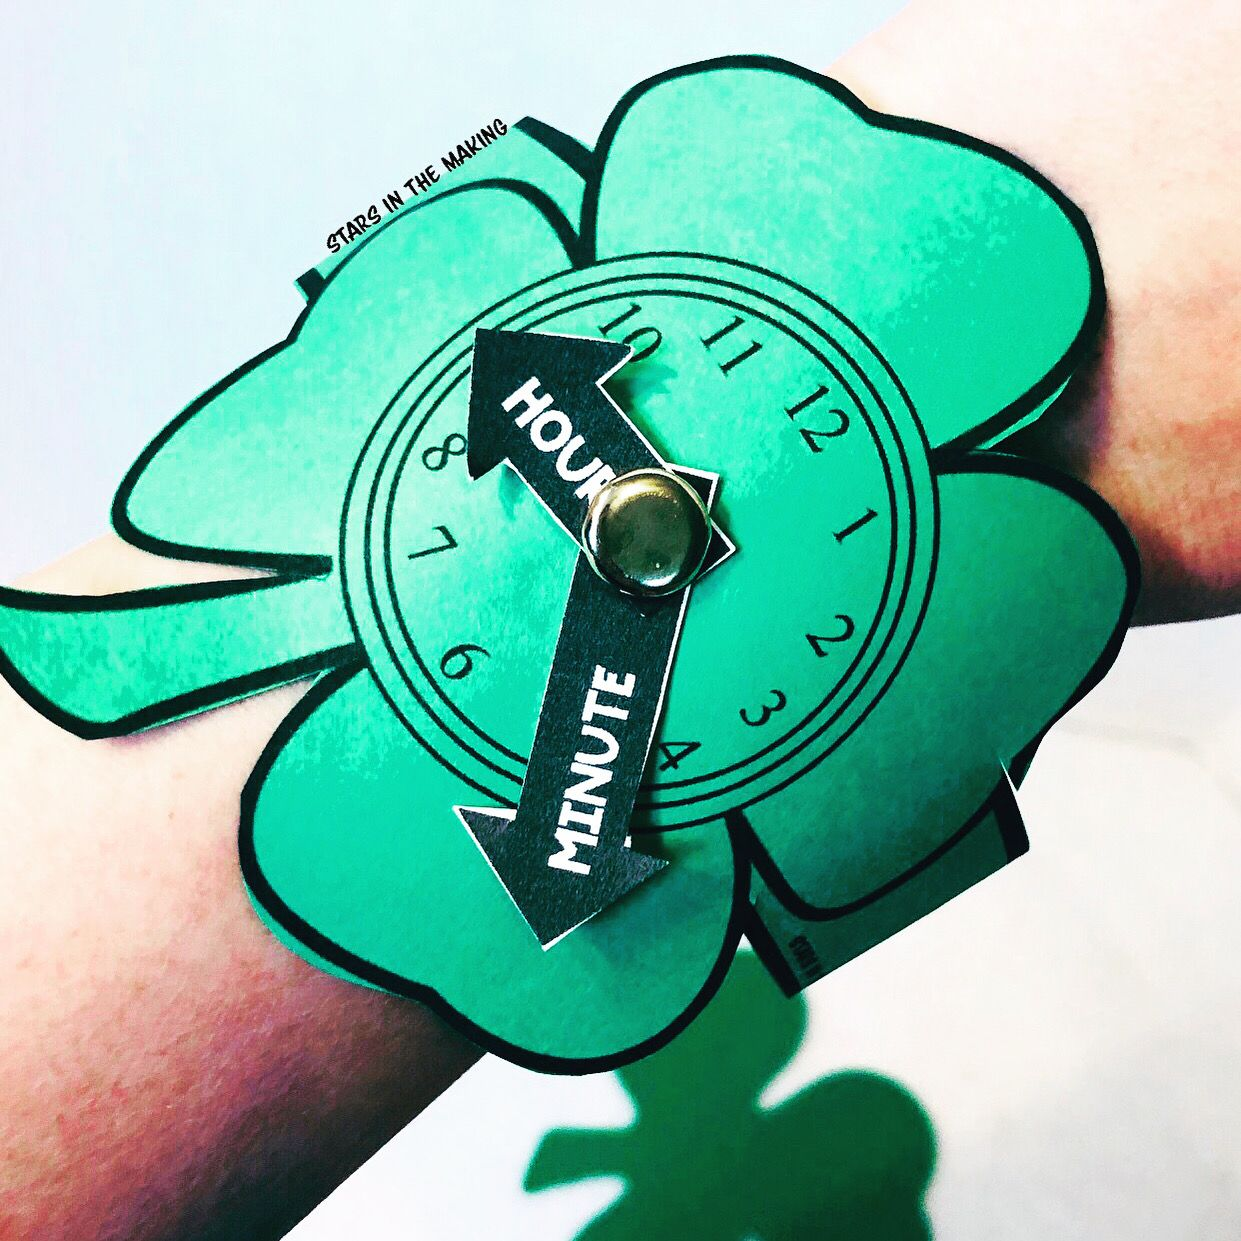 Shamrock Watch With Attachable Hands Telling Time Practice